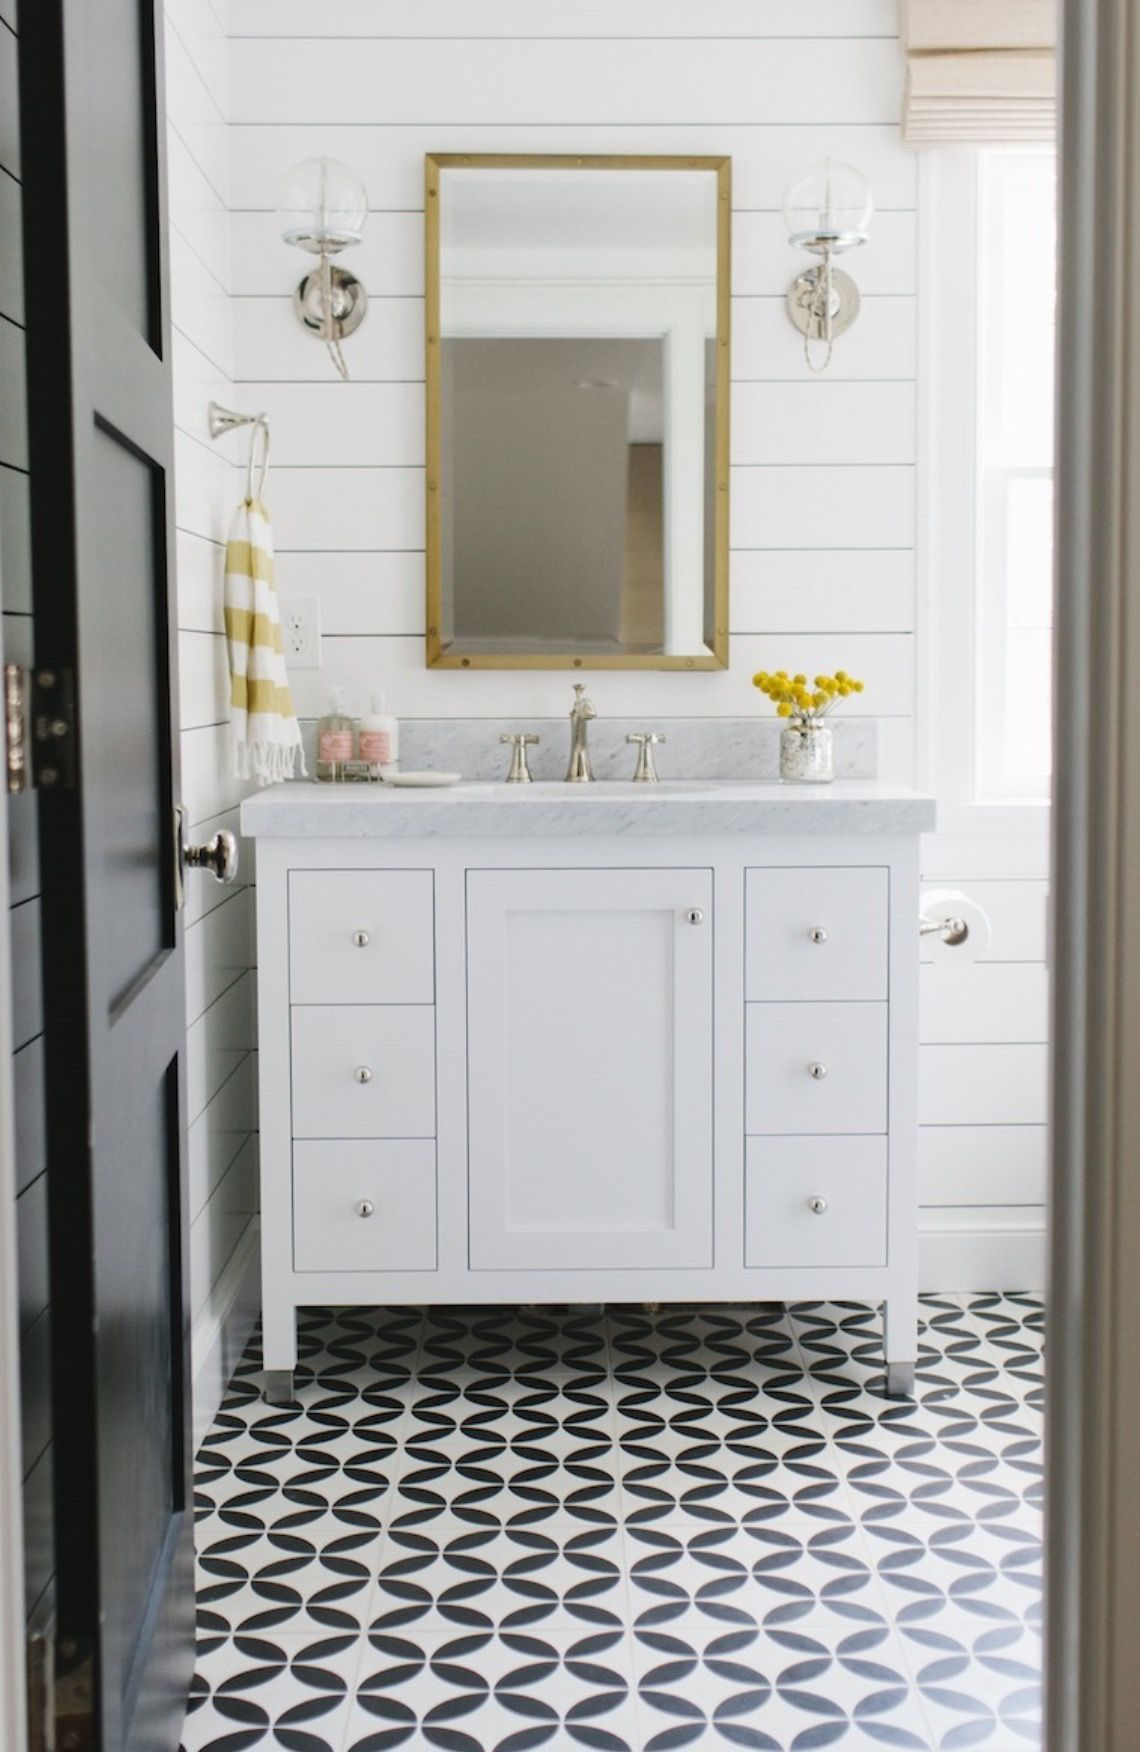 Pin by Jeanna porter on Bathroom design lovely and useful ...